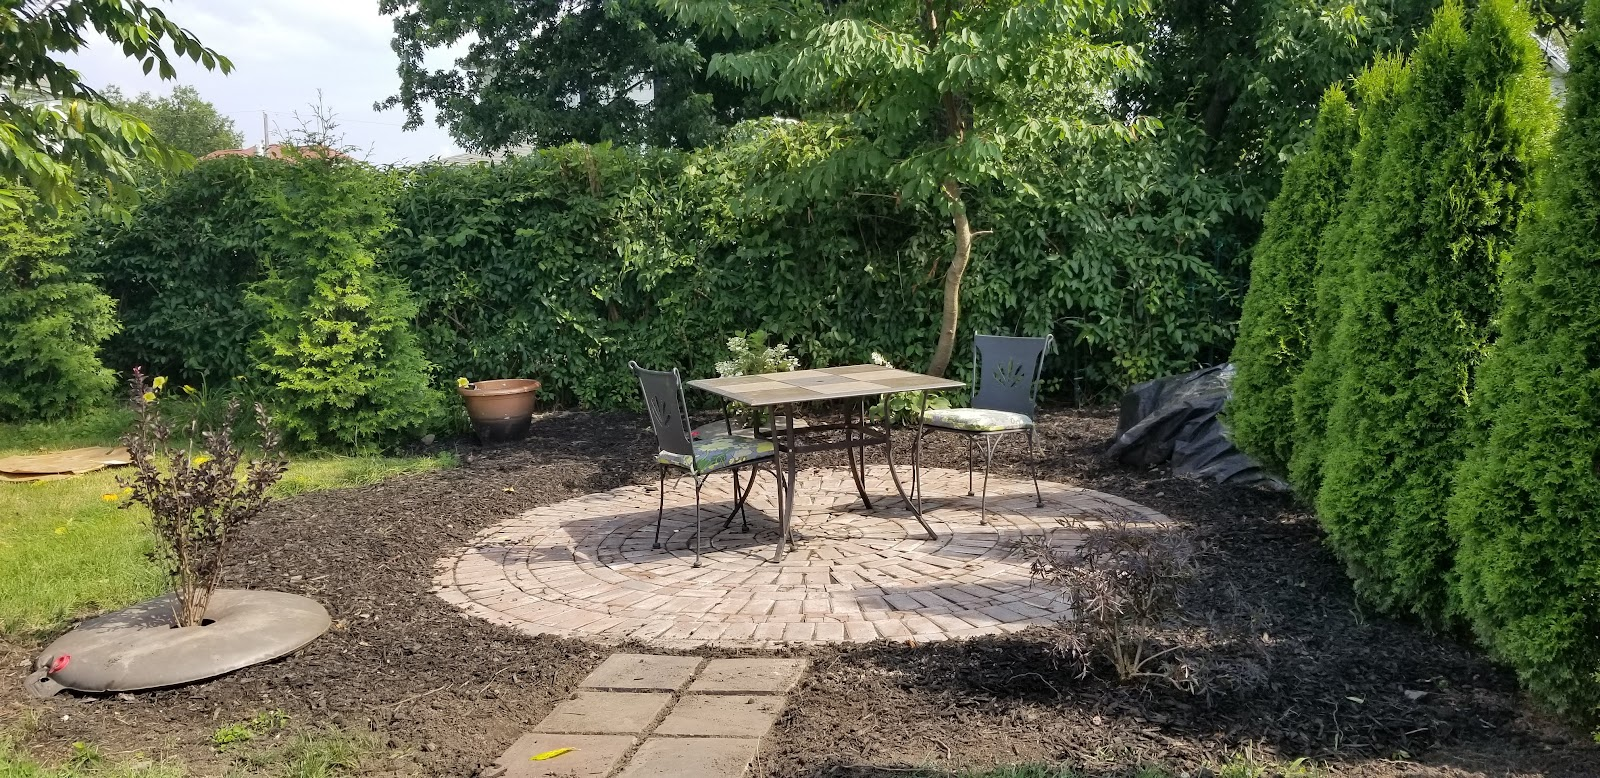 New circular brick patio is finished! July 7 2019